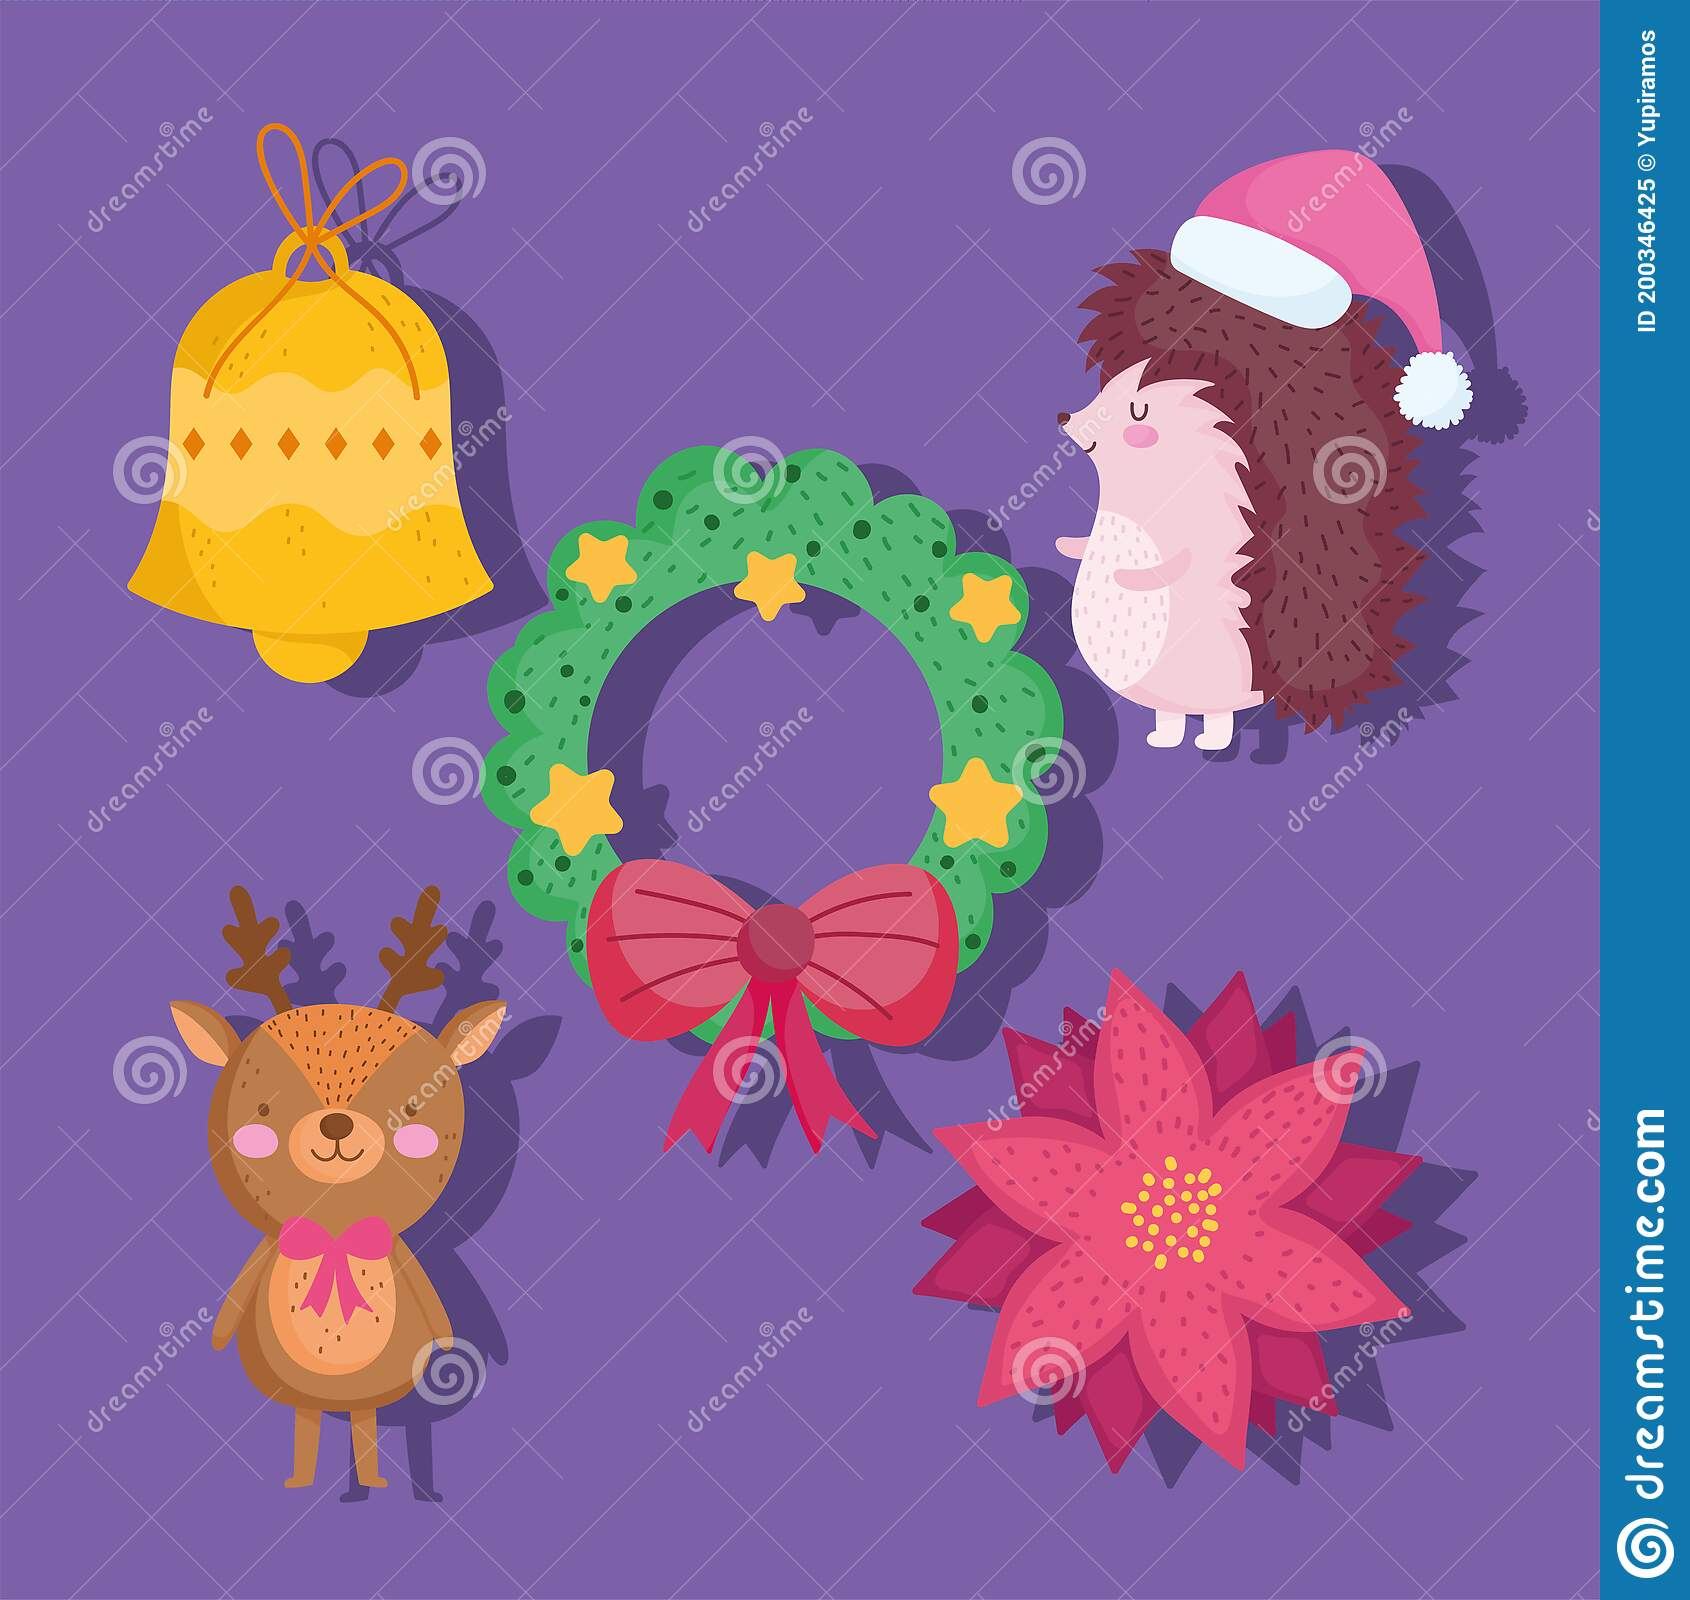 Christmas Cartoon Icons Stock Illustrations 10 051 Christmas Cartoon Icons Stock Illustrations Vectors Clipart Dreamstime